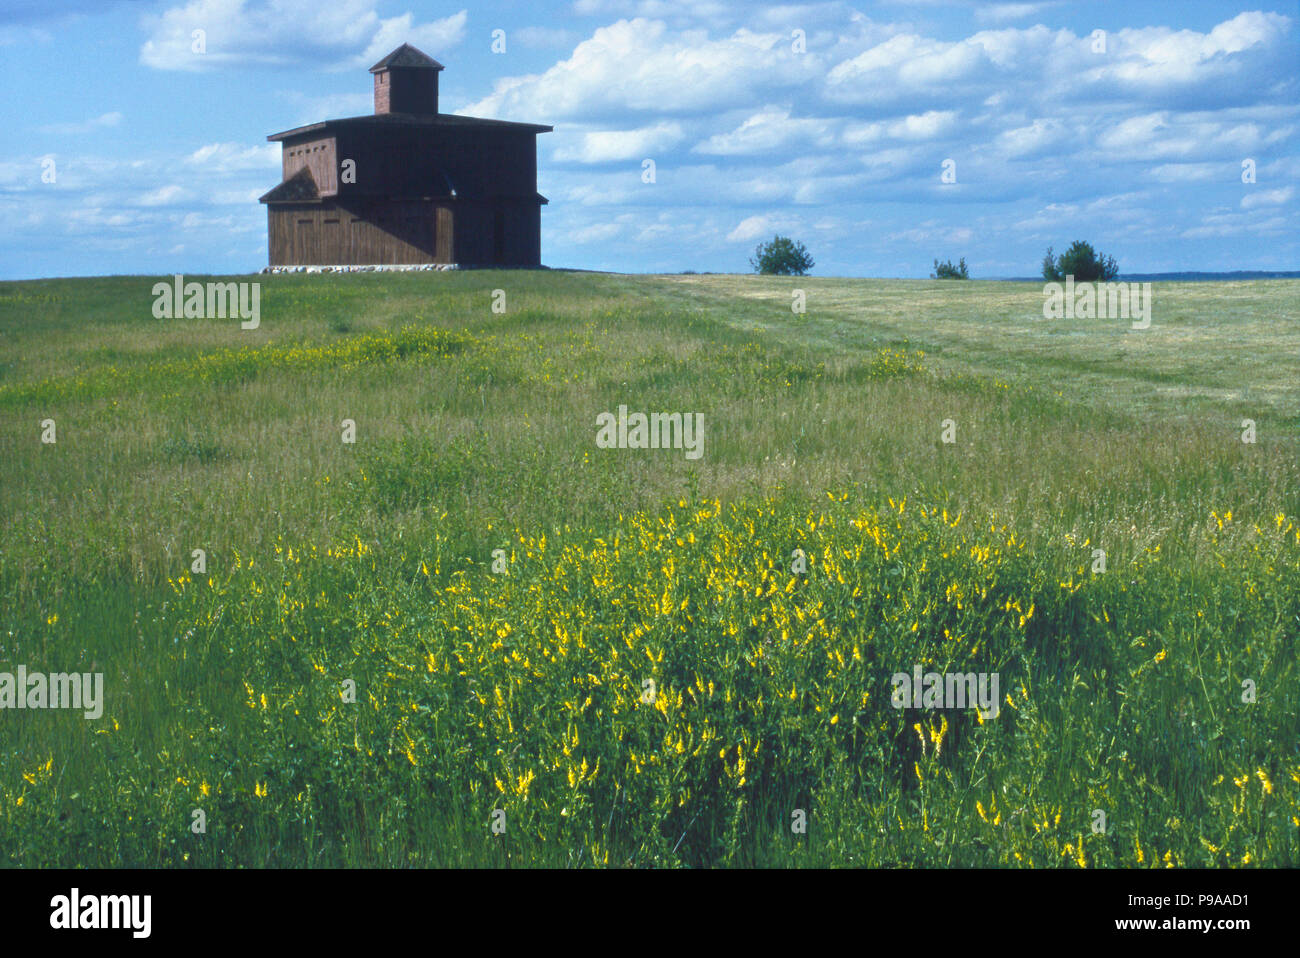 Fort McKeen blockhouse replica, renamed Fort Abraham Lincoln, built during the Indian Wars, North Dakota, 1870s. Photograph - Stock Image